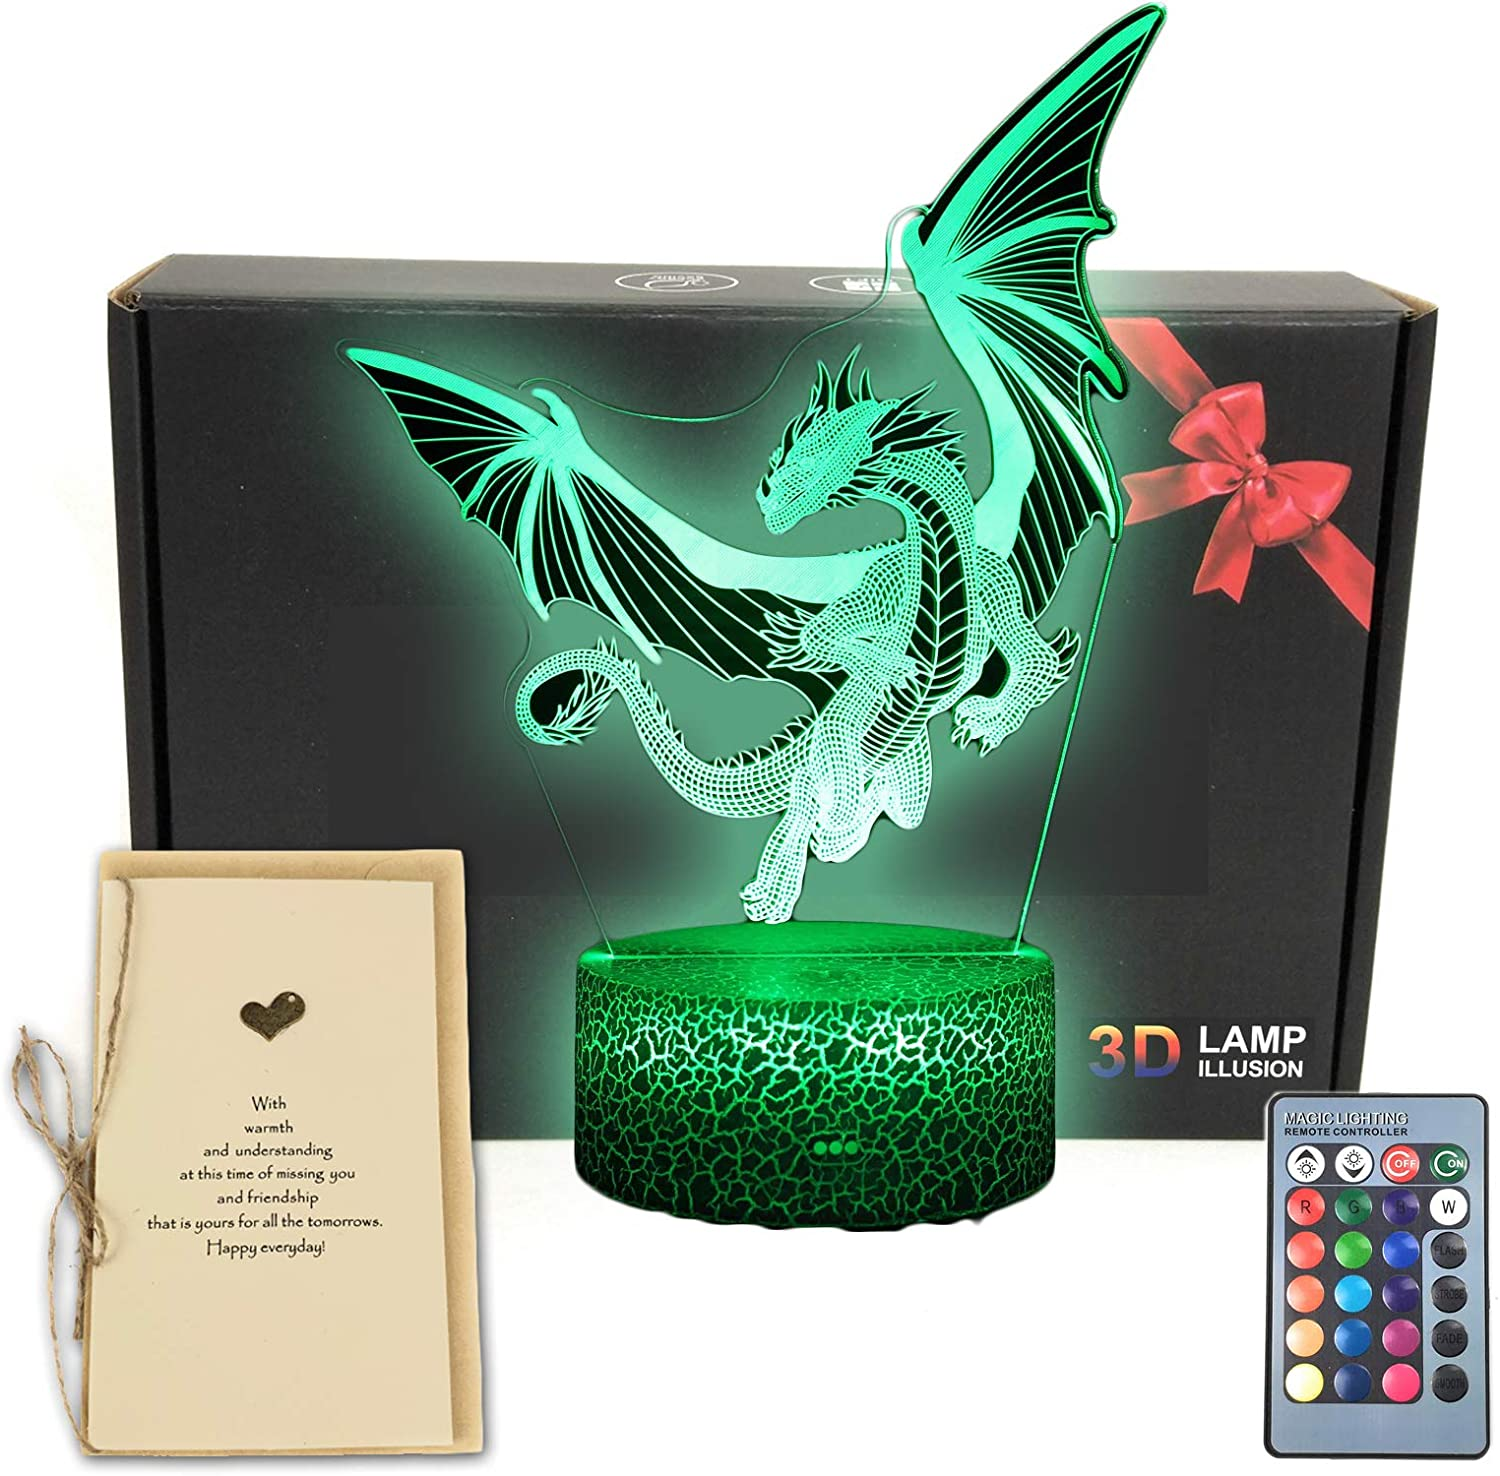 Dragon 3D Illusion LED Table Decor Lamp Night Light with Greeting Card, 16 Colors Change, Remote Control Bedroom Decorations Gifts for Girls, Men, Women, Kids, Boys, Teens